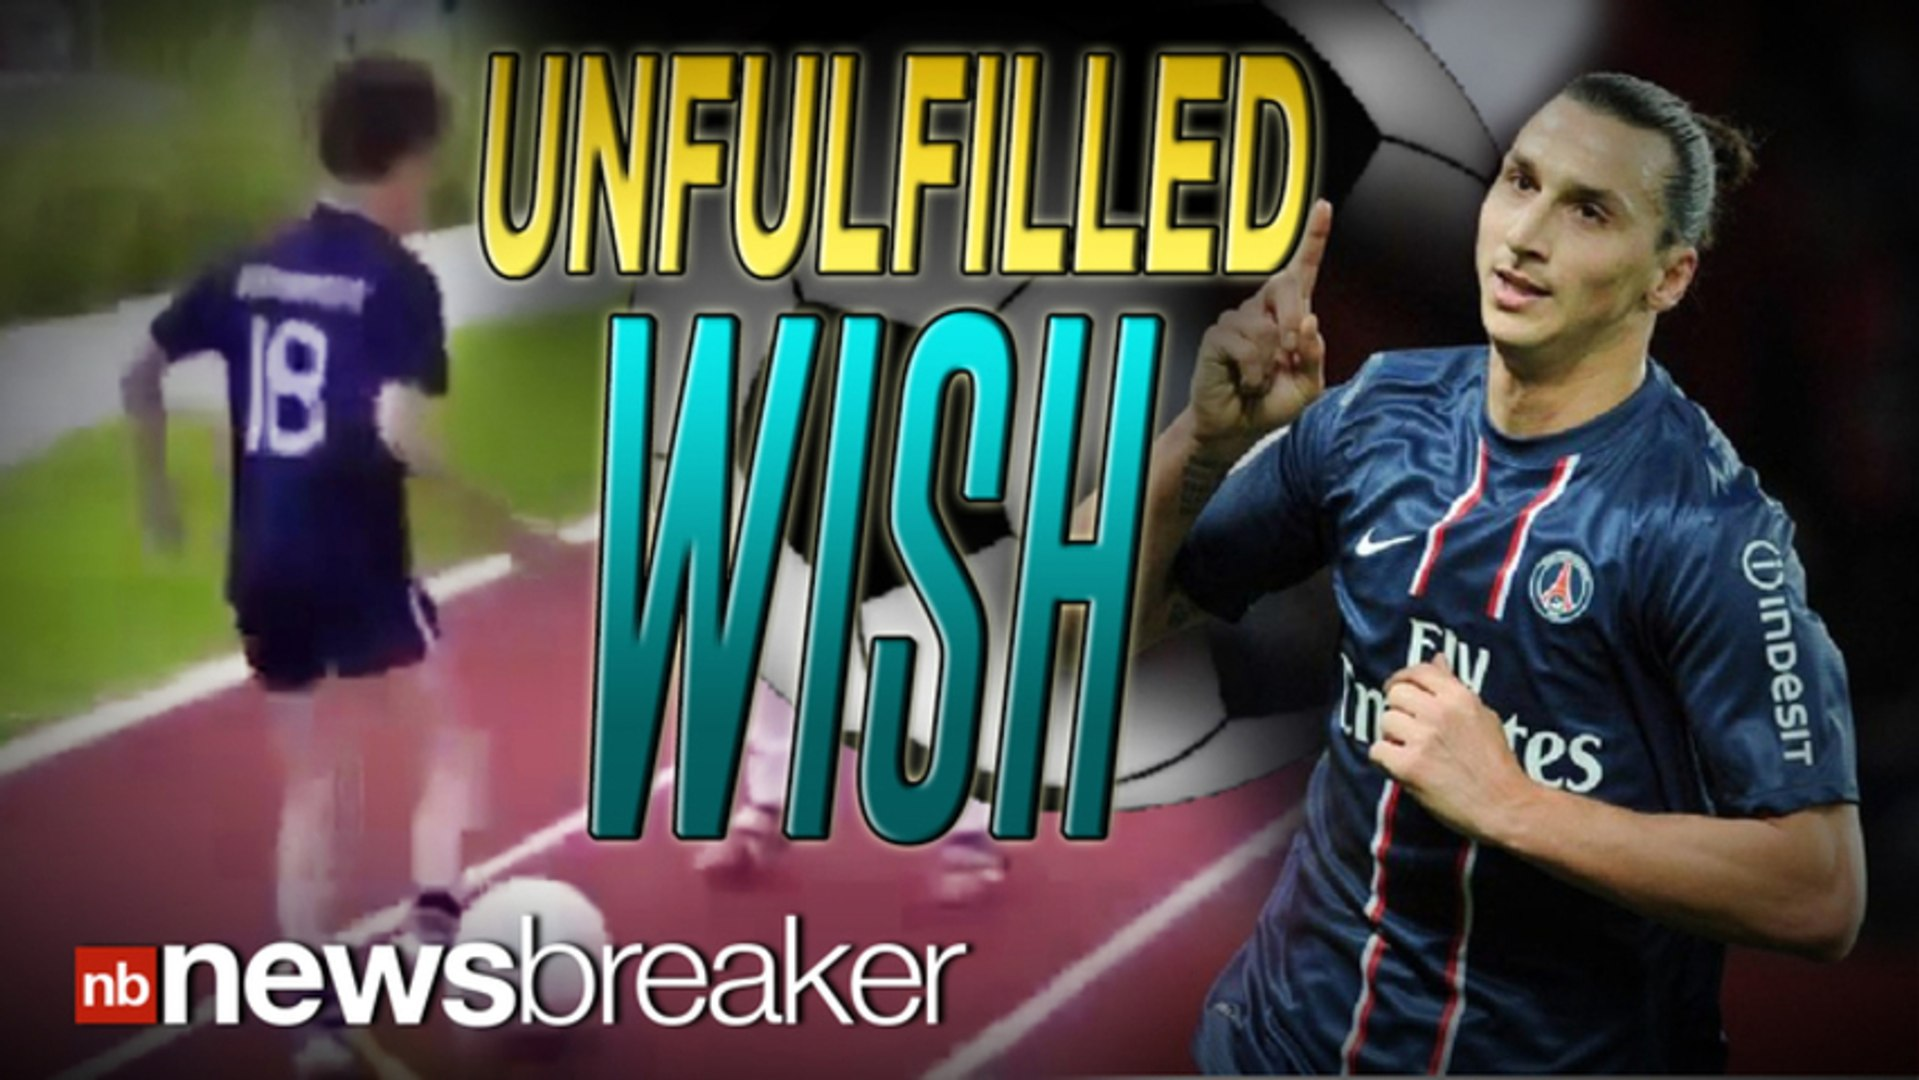 UNFULFILLED: Football Idol Zlatan Ibrahimovic ?Too Busy? to Meet Dying Boy in Last Wish